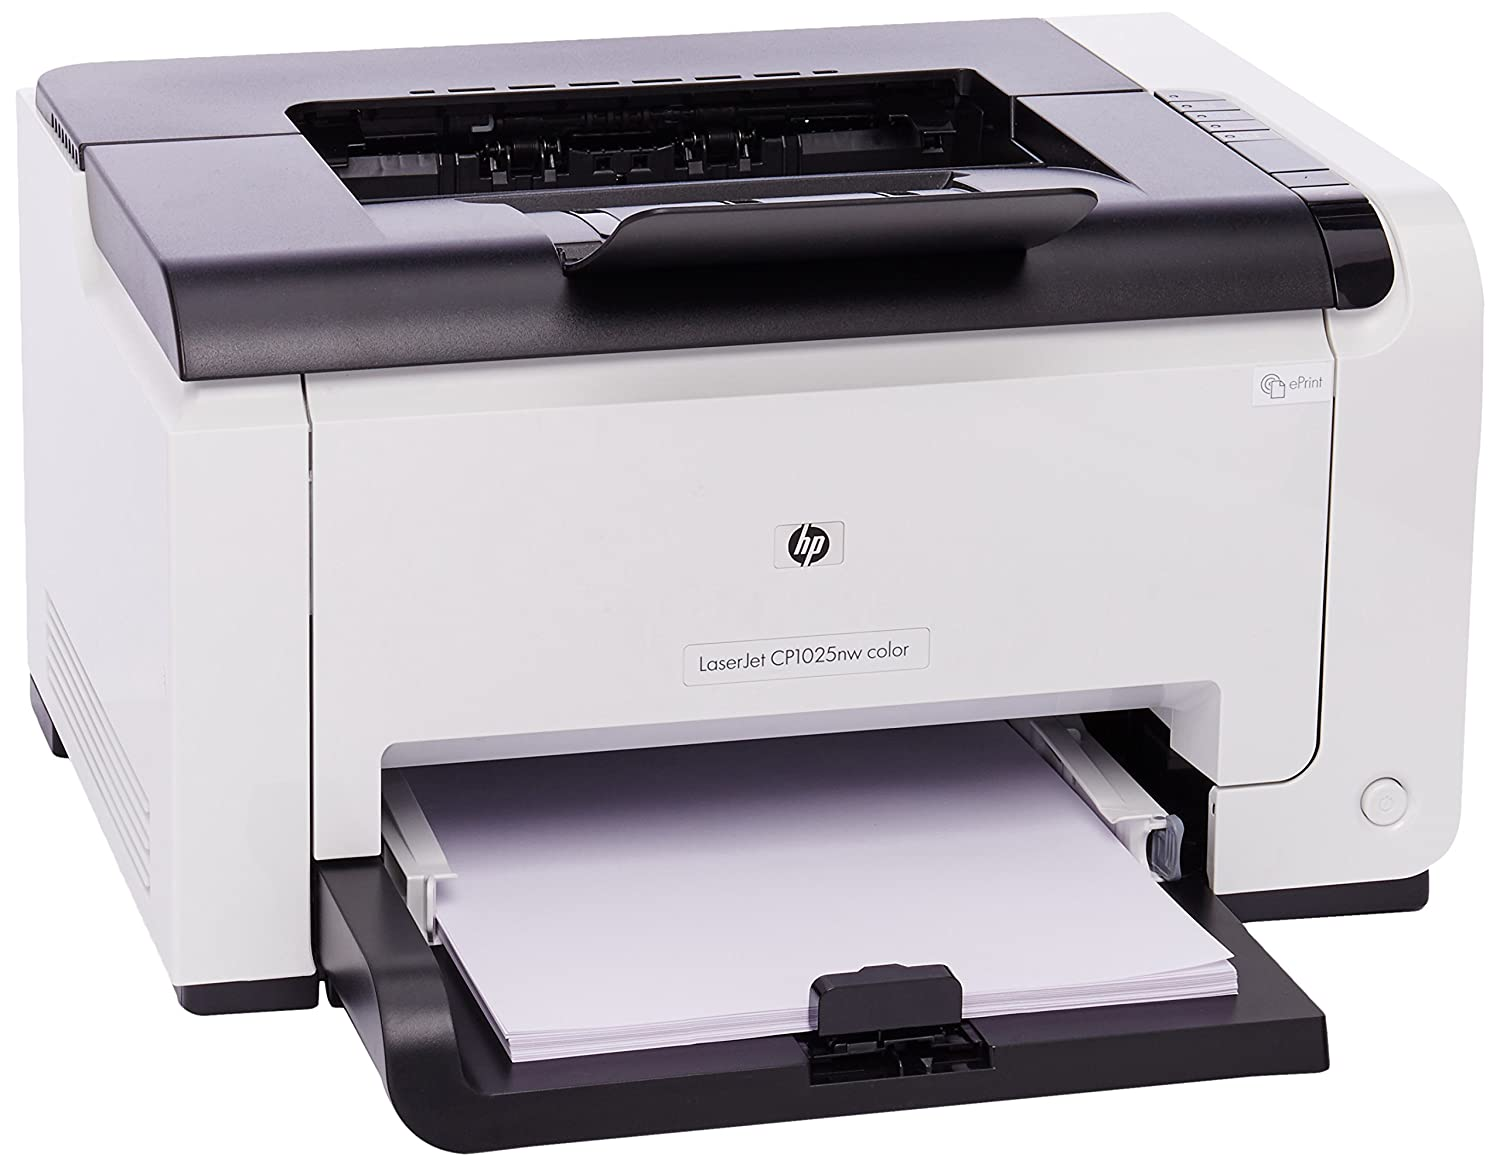 Color printers laser - Amazon Com Hp Laserjet Pro Cp1025nw Color Printer Ce914a Electronics